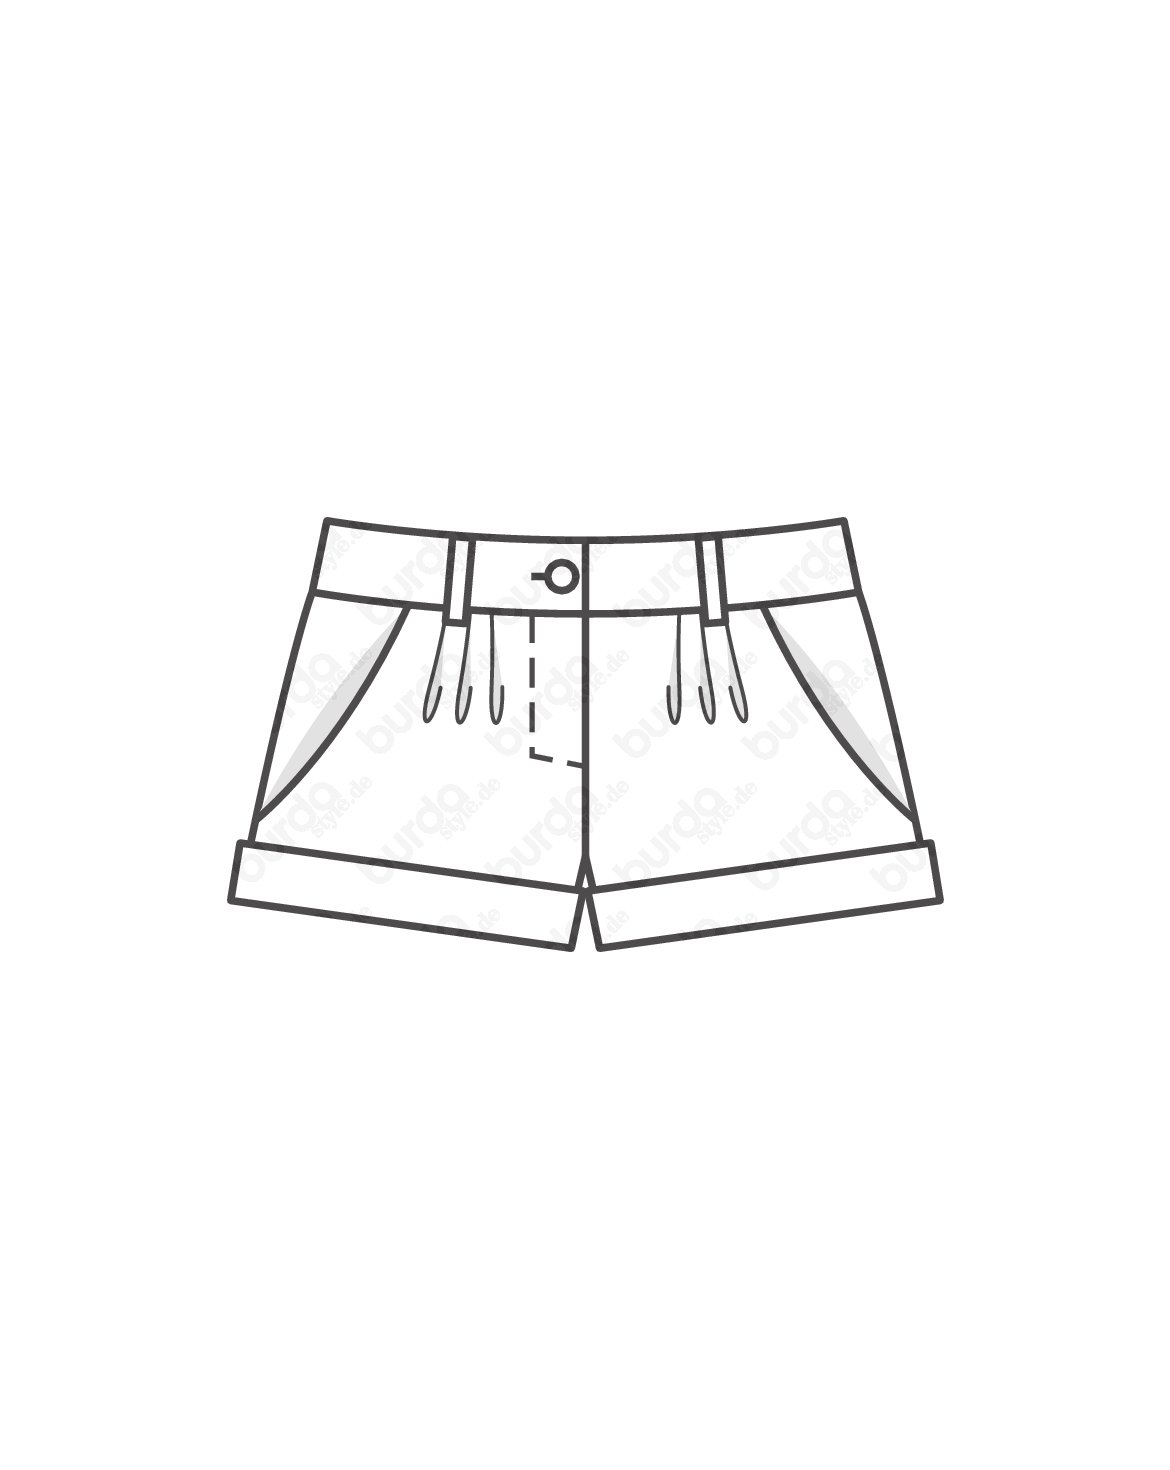 Schnittmuster Shorts 07/2013 #105A